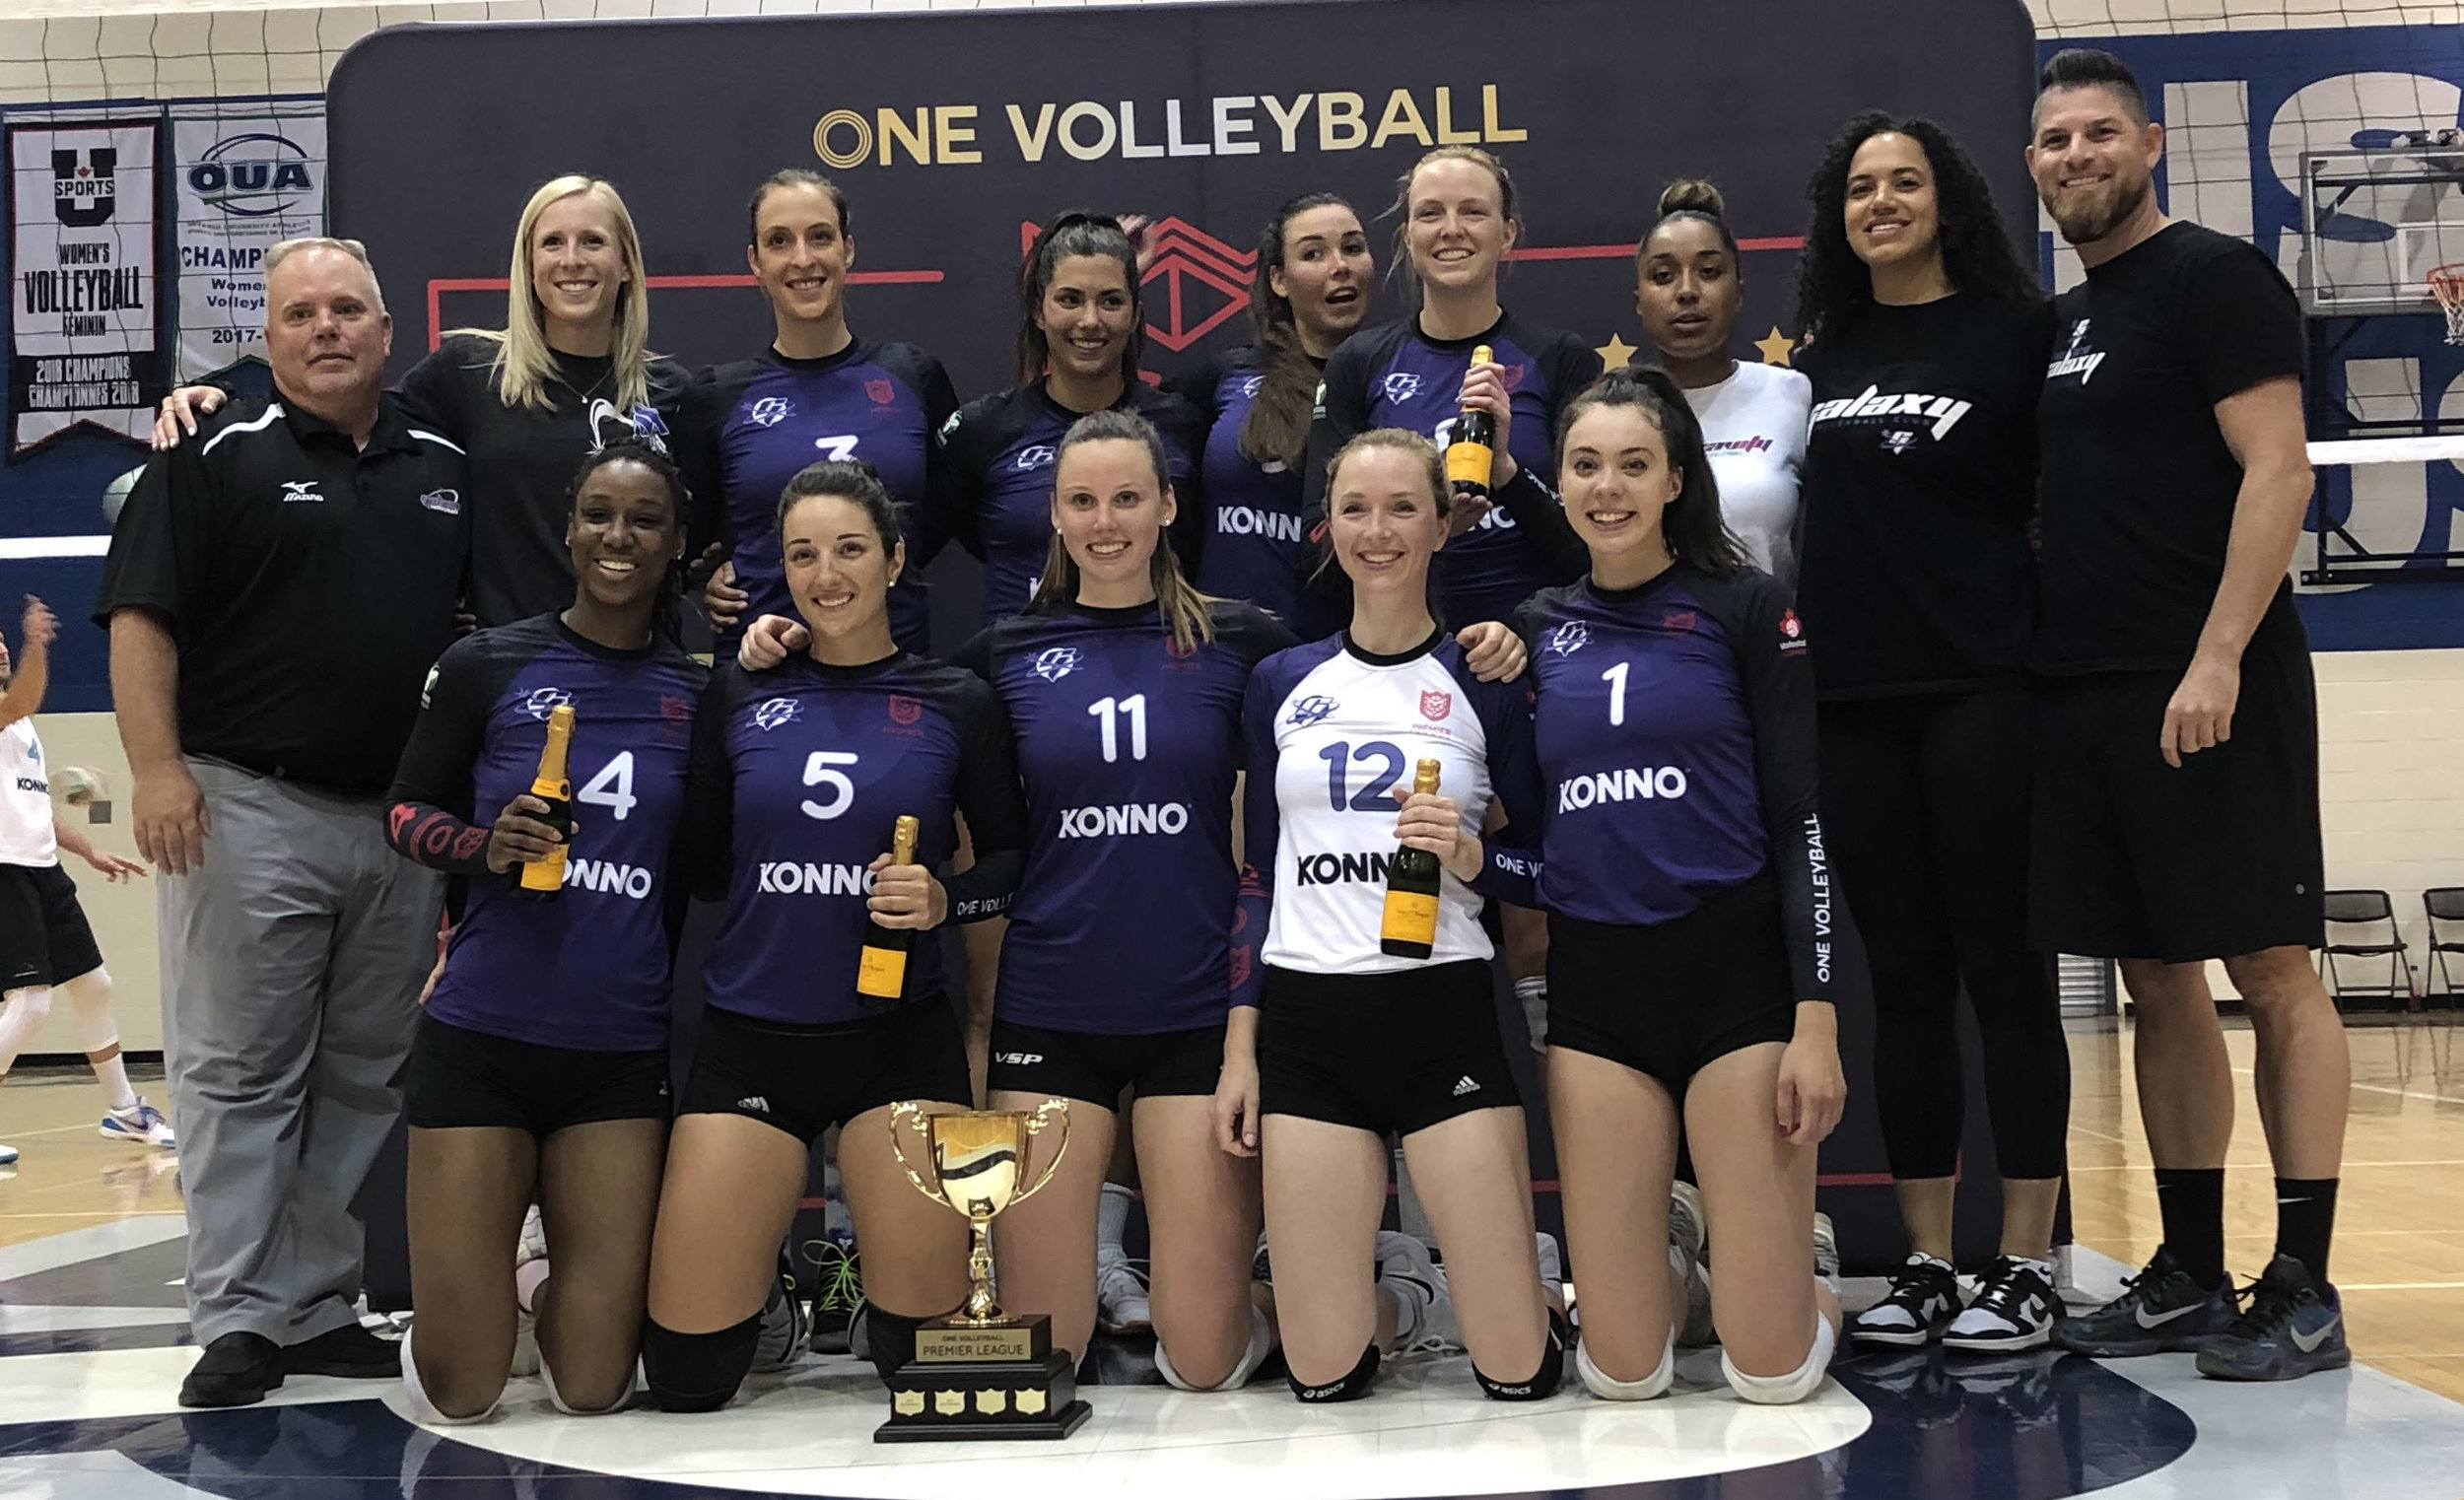 Galaxy Volleyball All-Stars